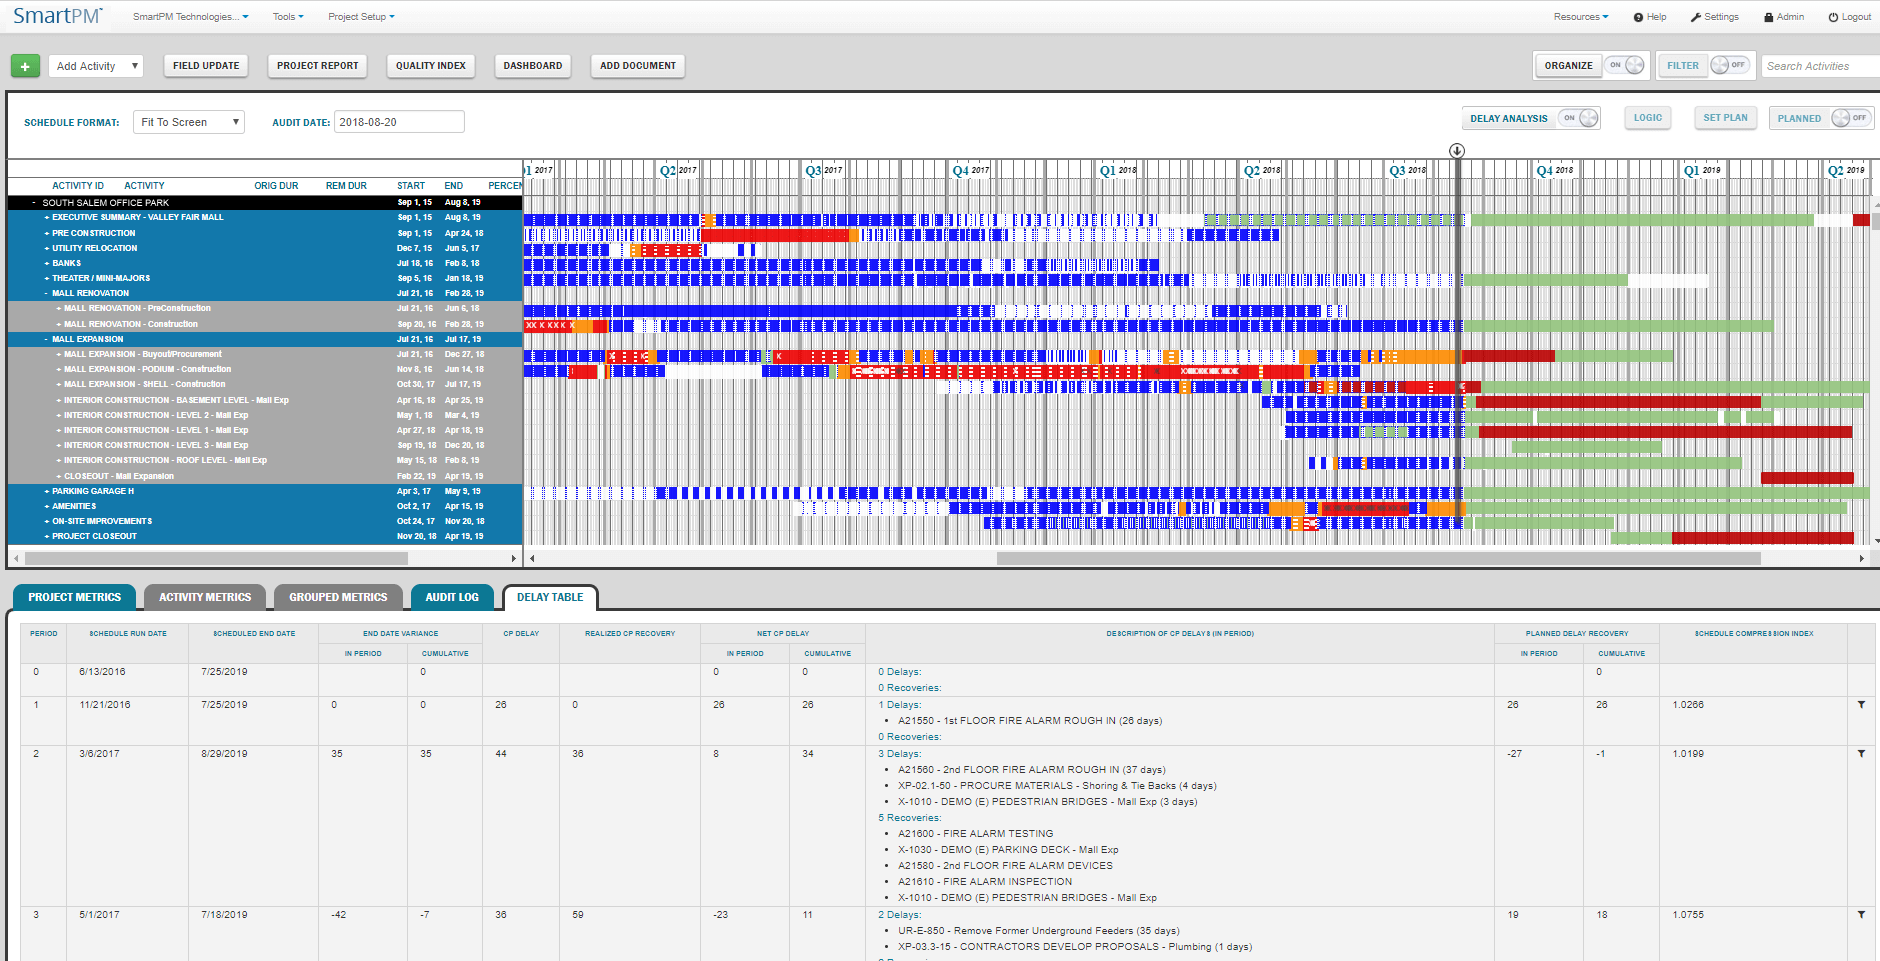 Project Metrics and Gantt View- Drill Down